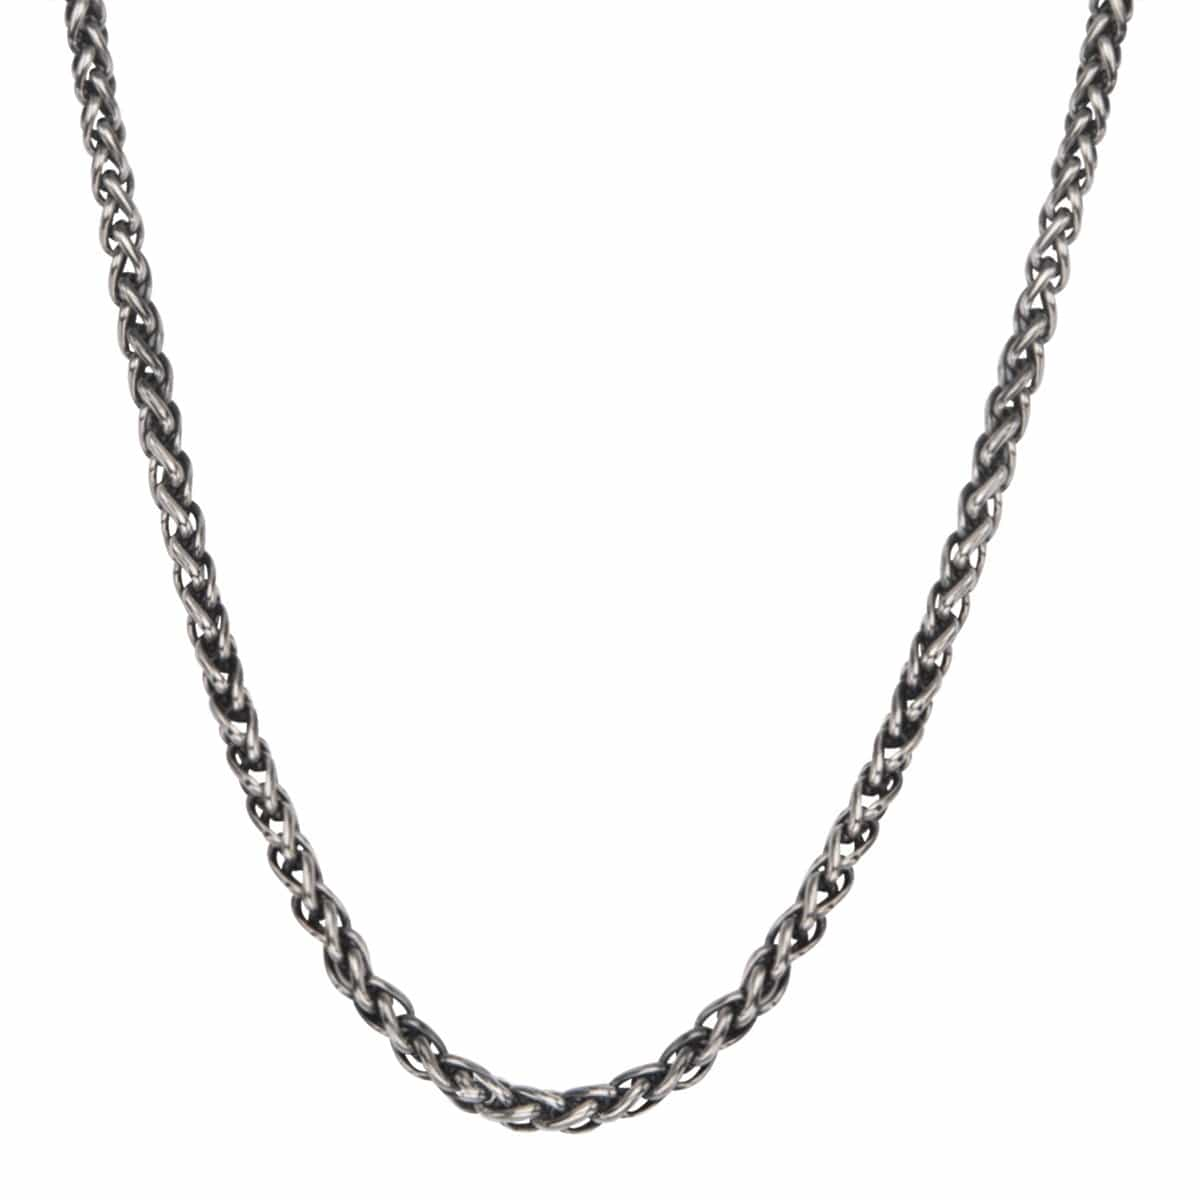 Darkened Silver Stainless Steel 4mm Wheat Chain Chains